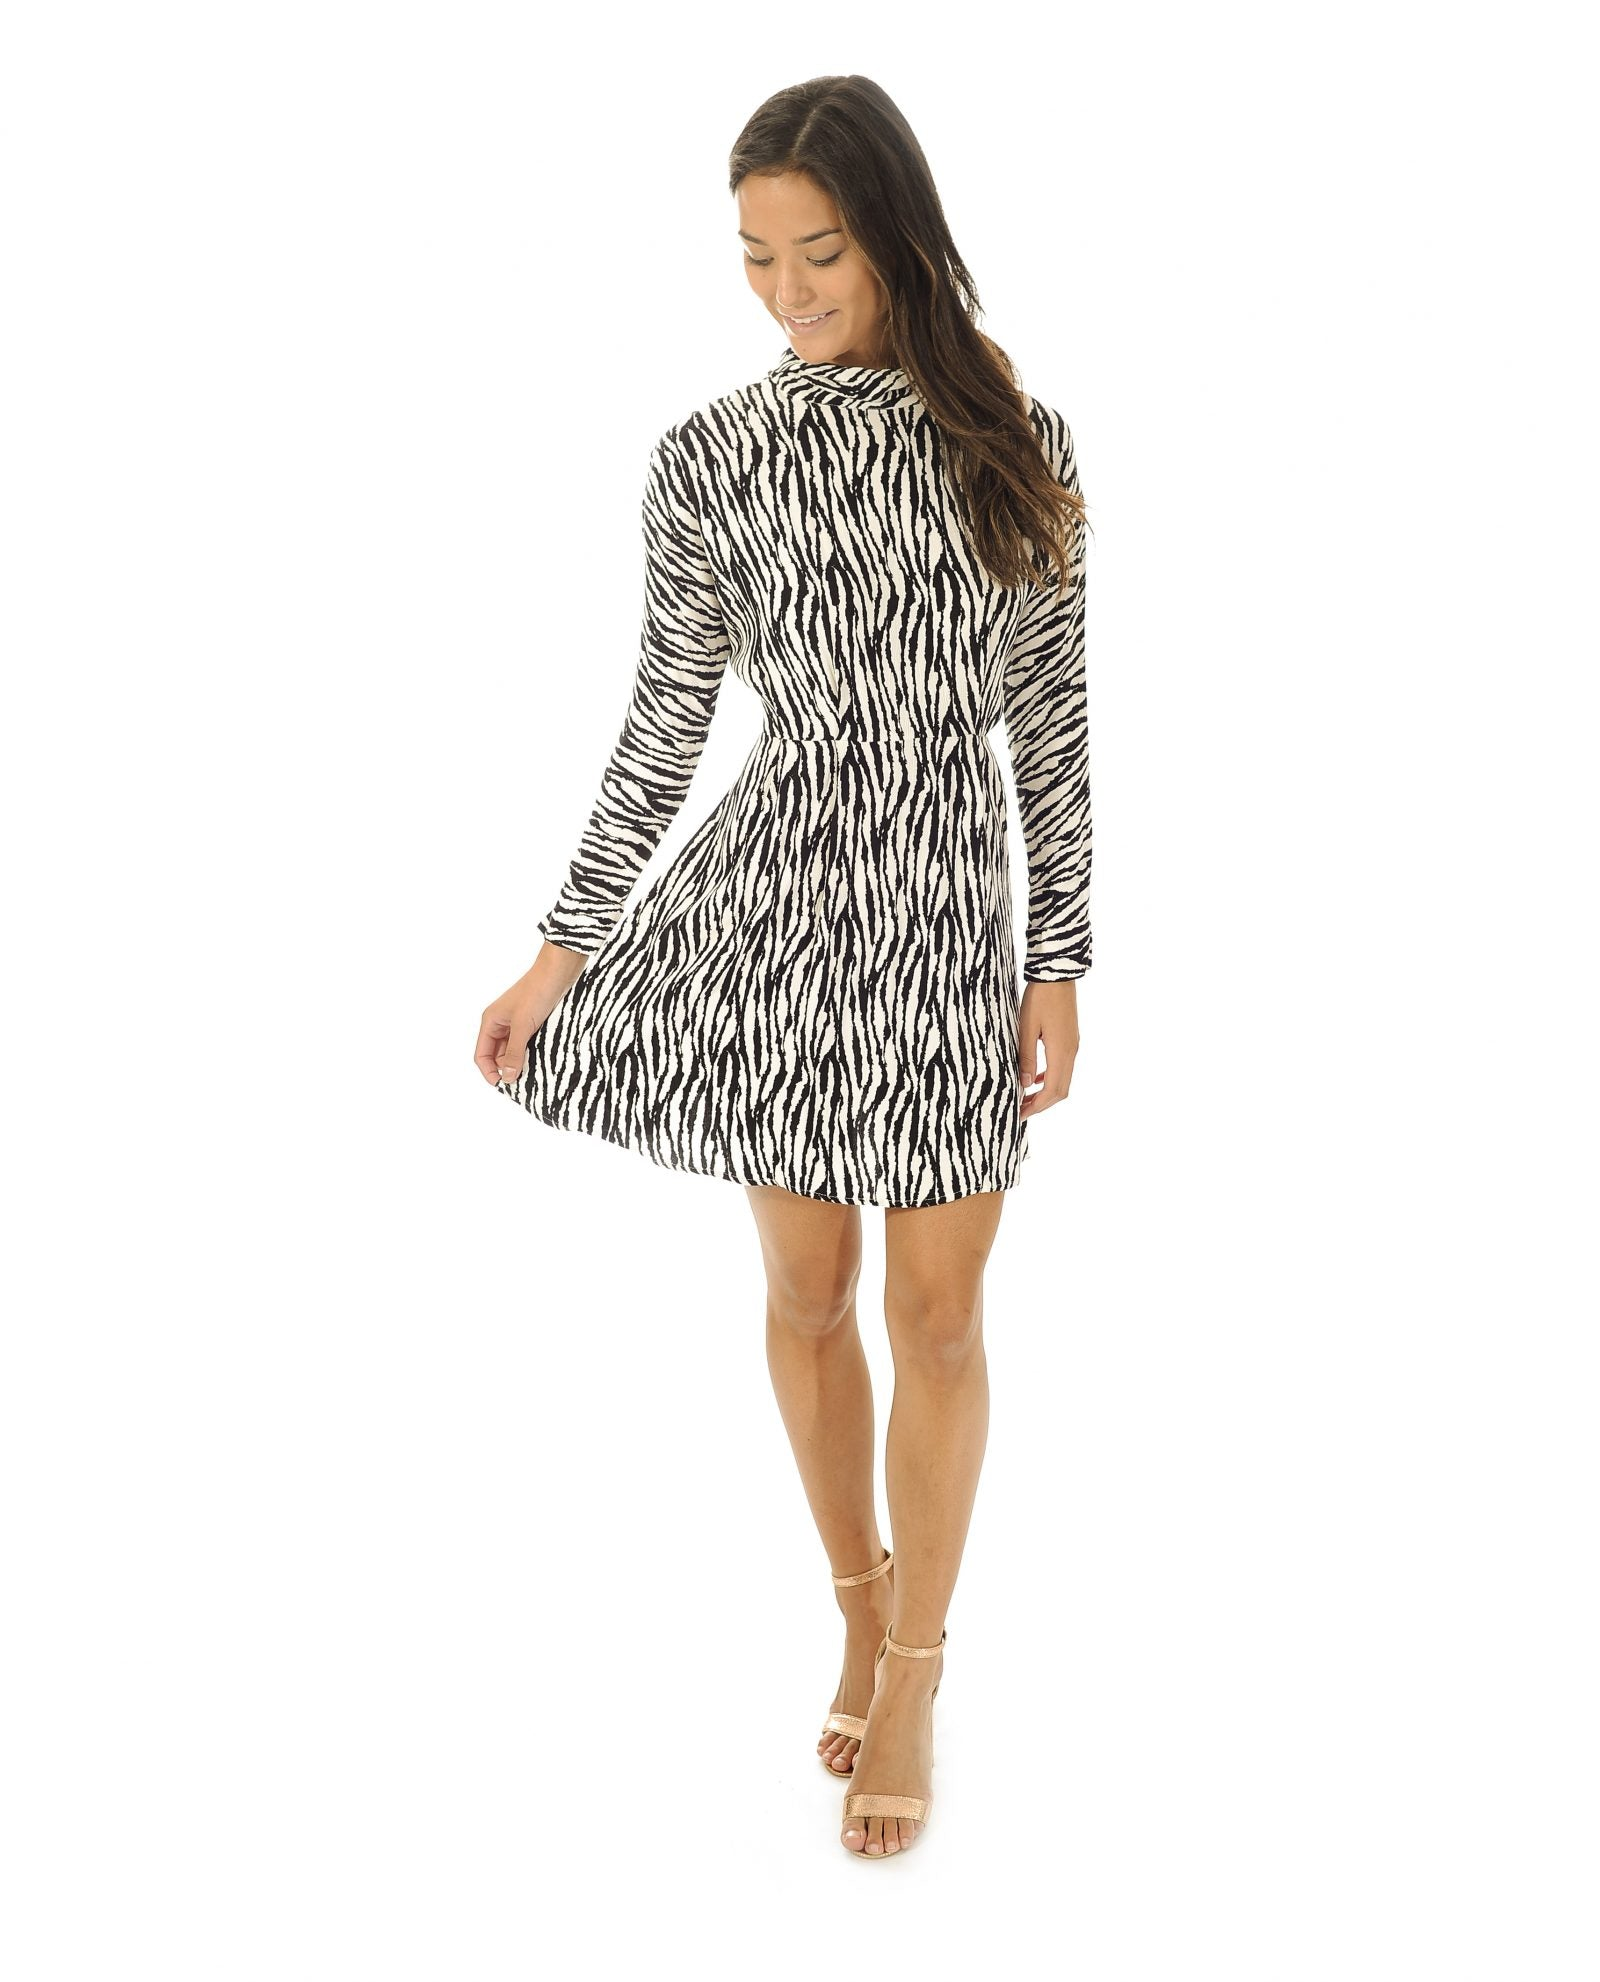 TOPSHOP ZEBRA STRIPE SKATER DRESS_AAA0848